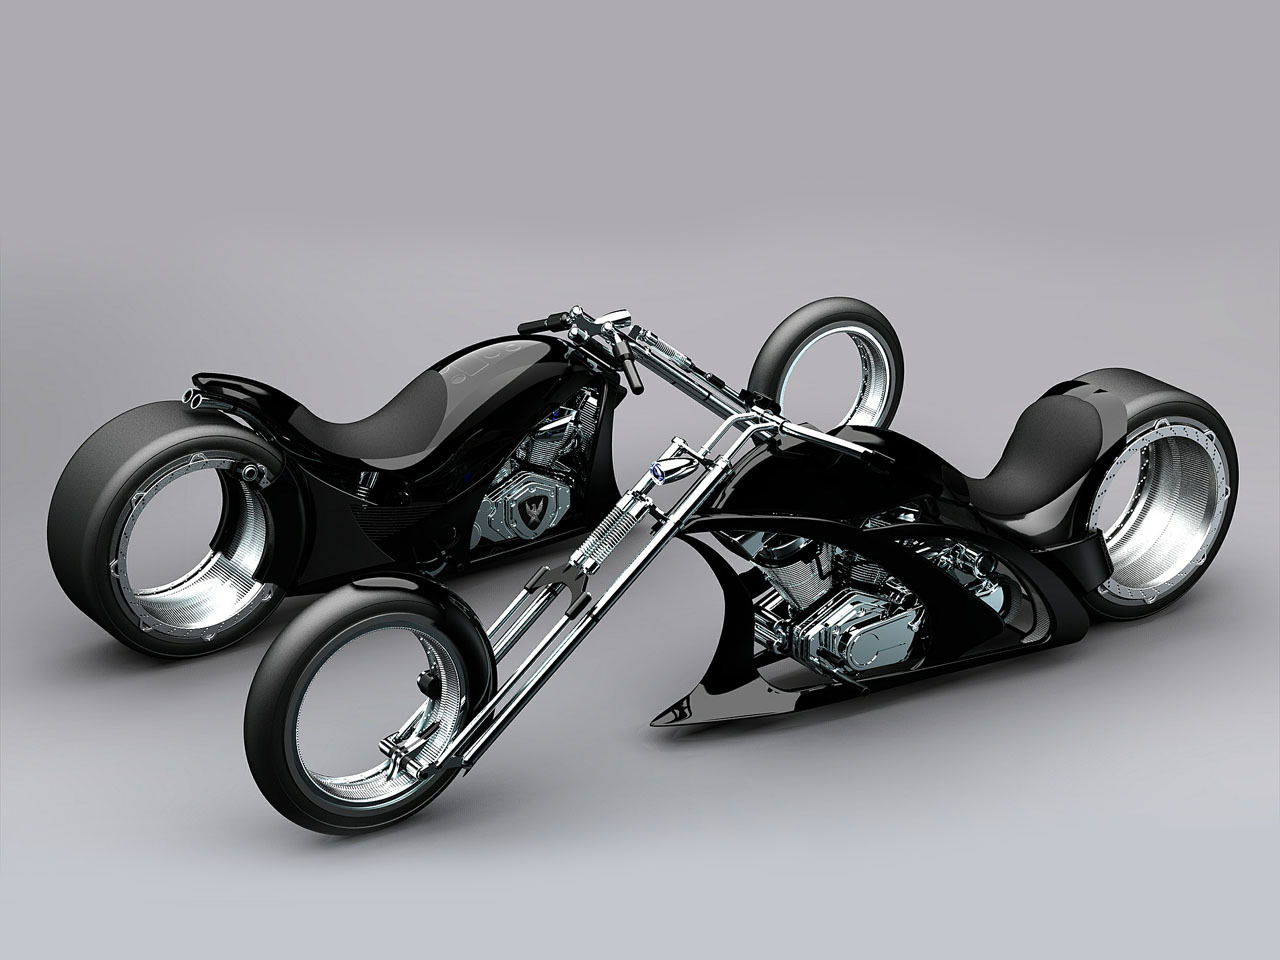 Custom Choppers Motorcycles 1280 x 960 · 177 kB · jpeg